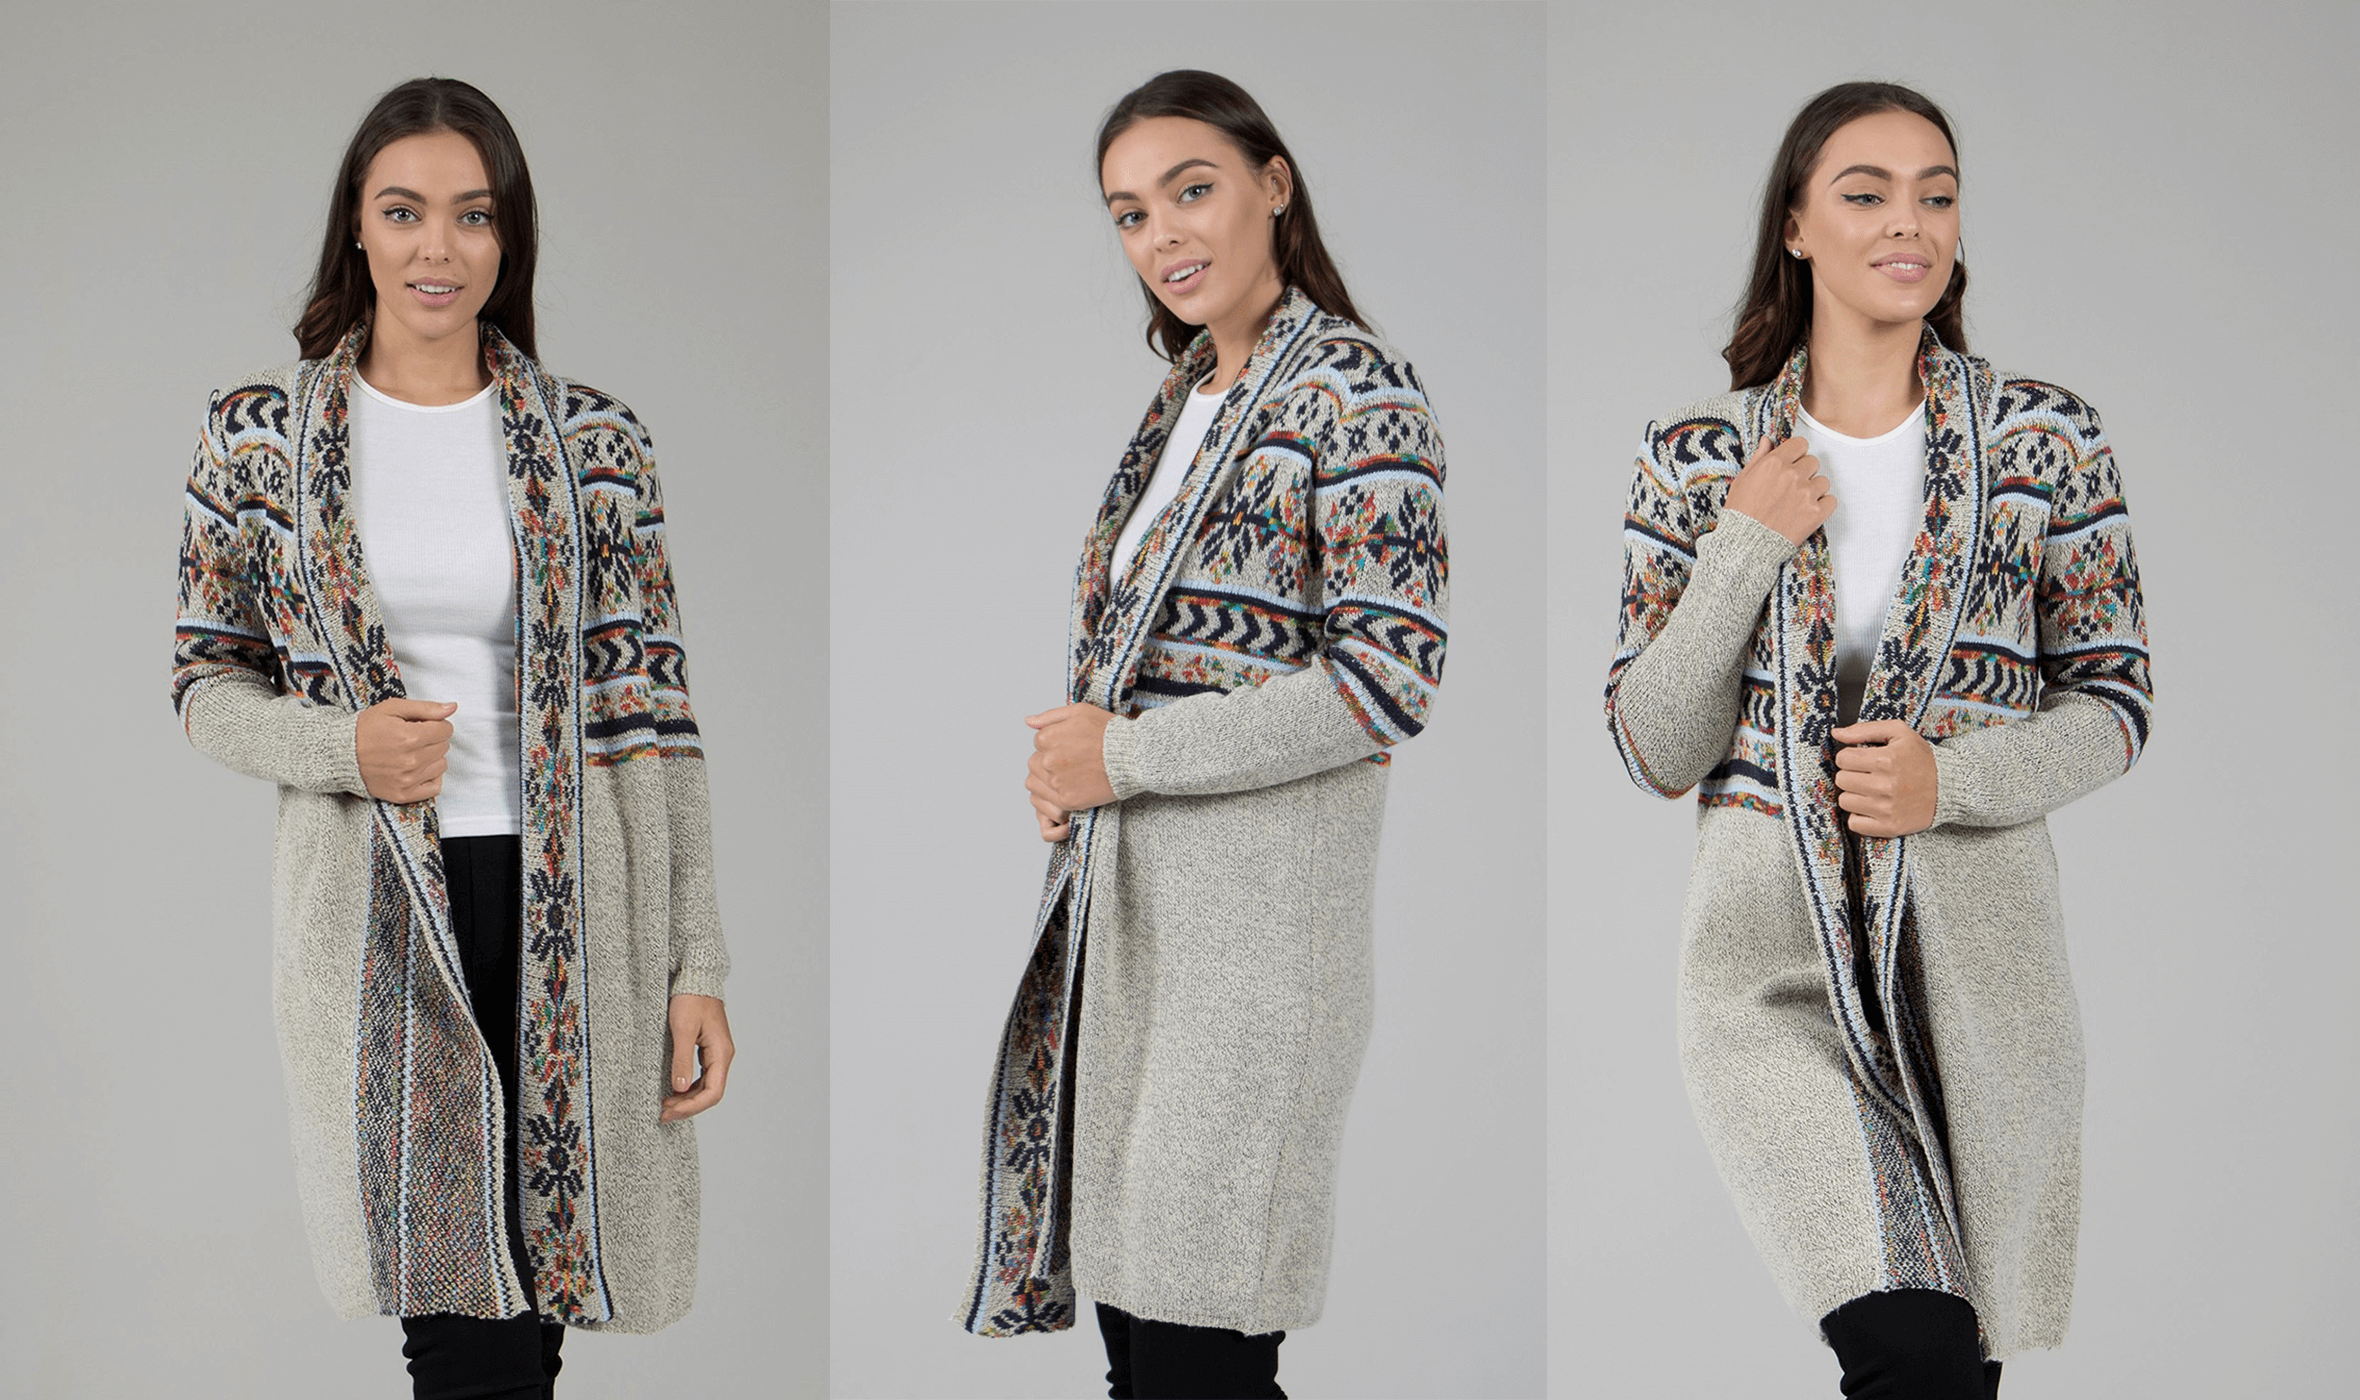 Aztec Prints for Autumn/Winter - Tribal Print Knit Cardigan | Femme Connection